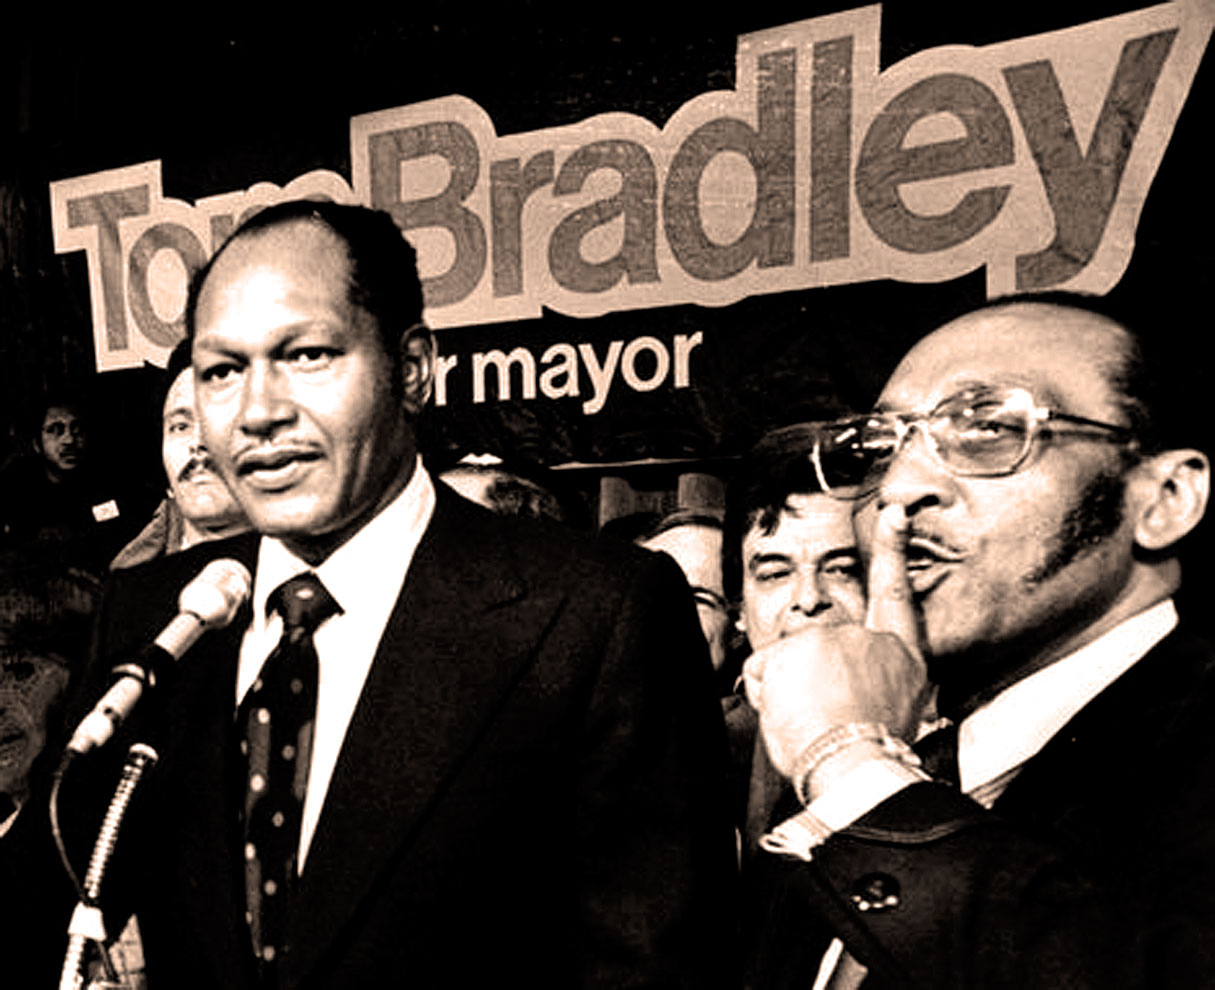 Mayor-Elect Tom Bradley Talks About Los Angeles – June 3, 1973 – Past Daily Reference Room